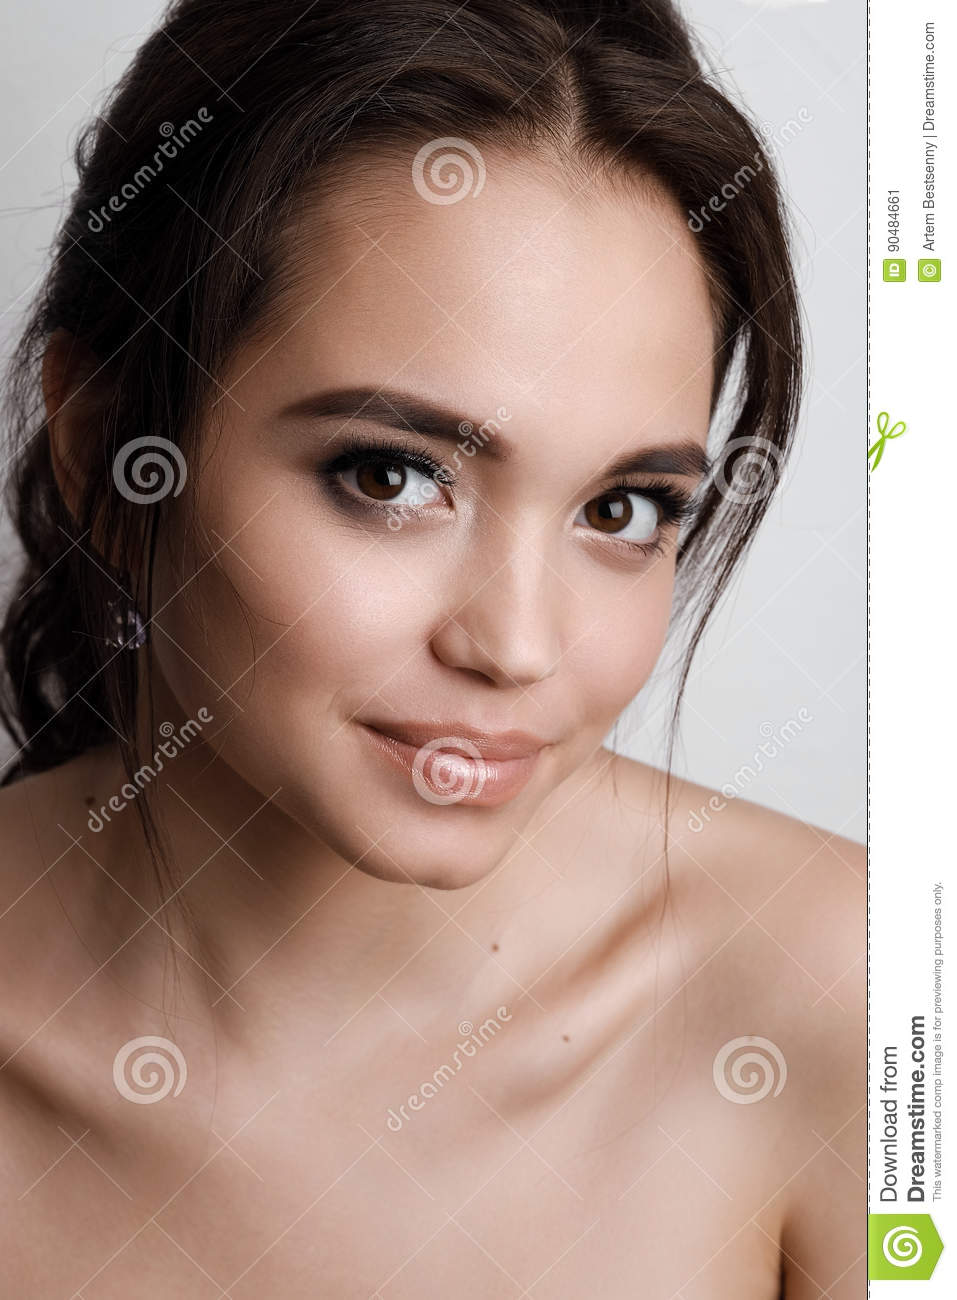 Portrait Of A Young Girl Brunette With Brown Eyes And Soft Natural